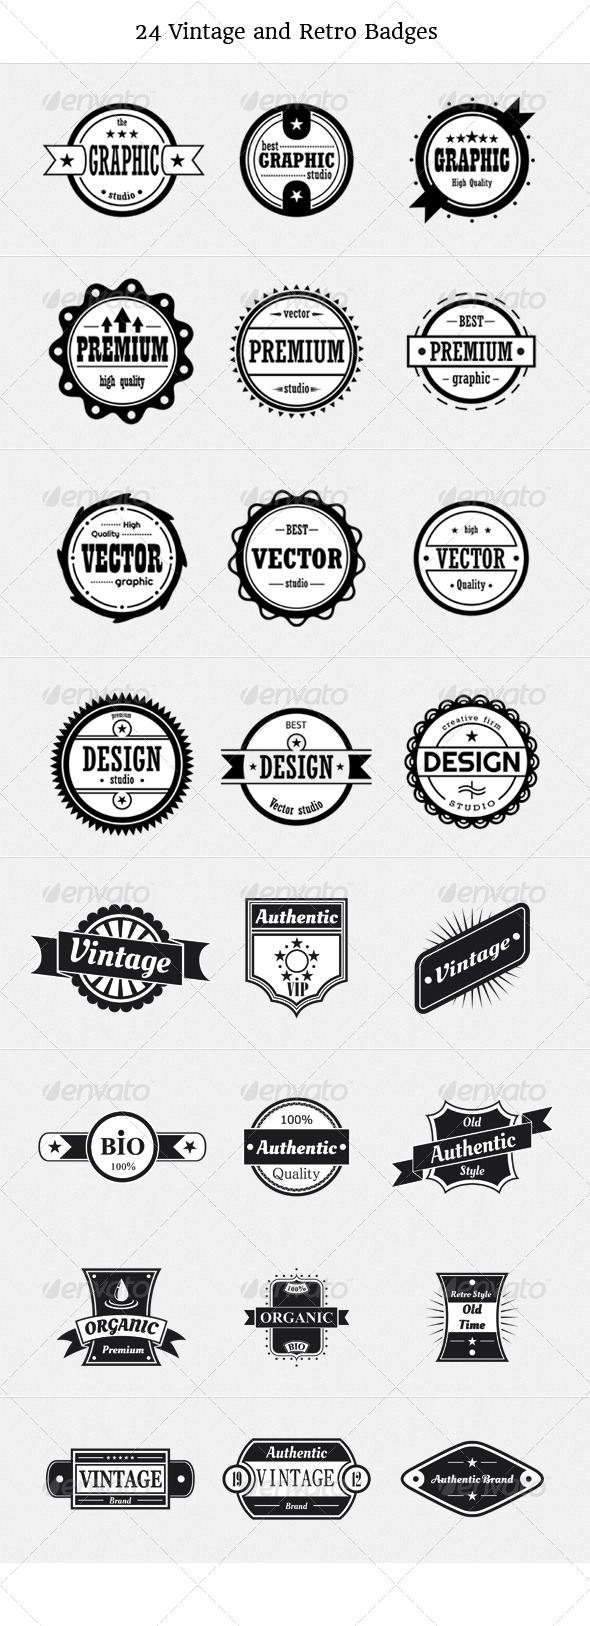 24 Vintage and Retro Badges - Retro Technology